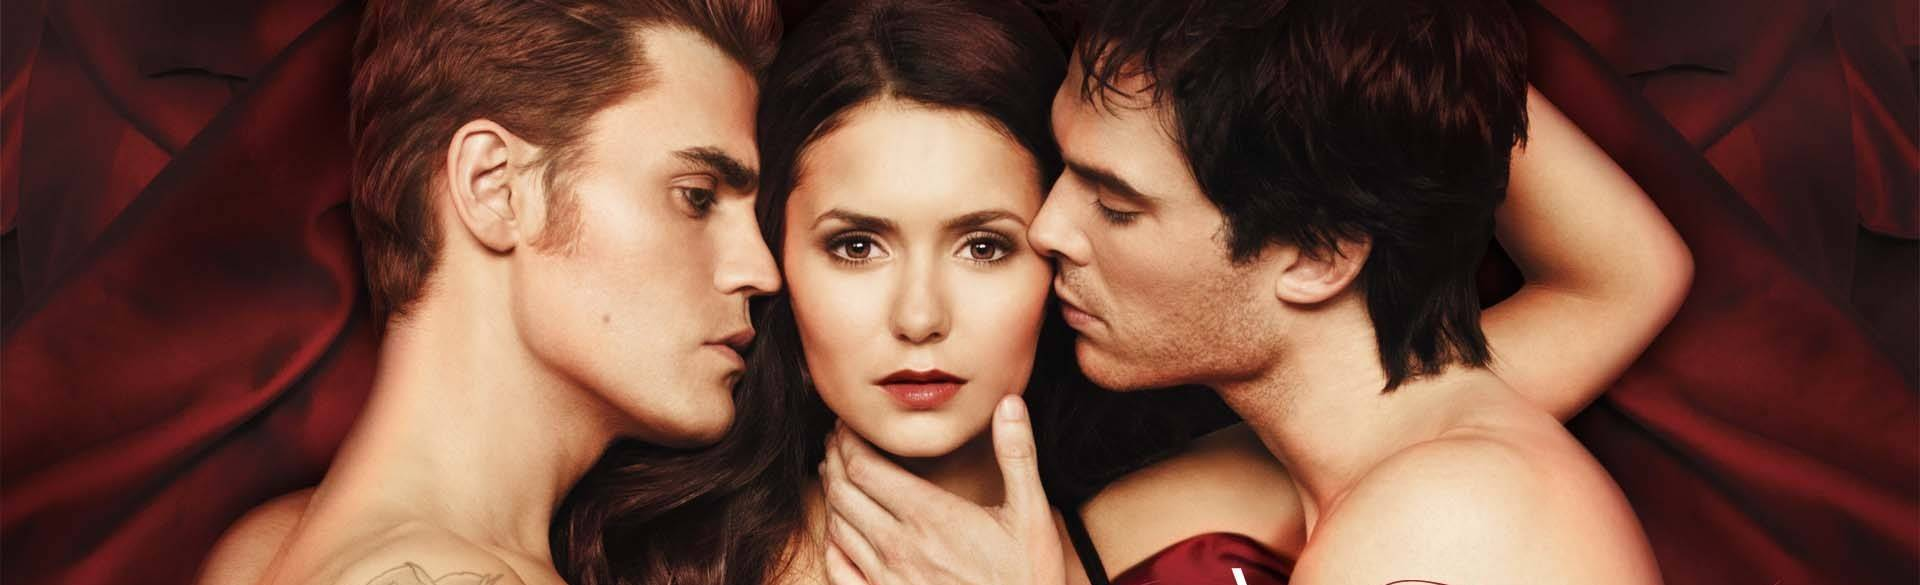 The Vampire Diaries Season 1 / Дневниците на Вампира Сезон 1 (2009)